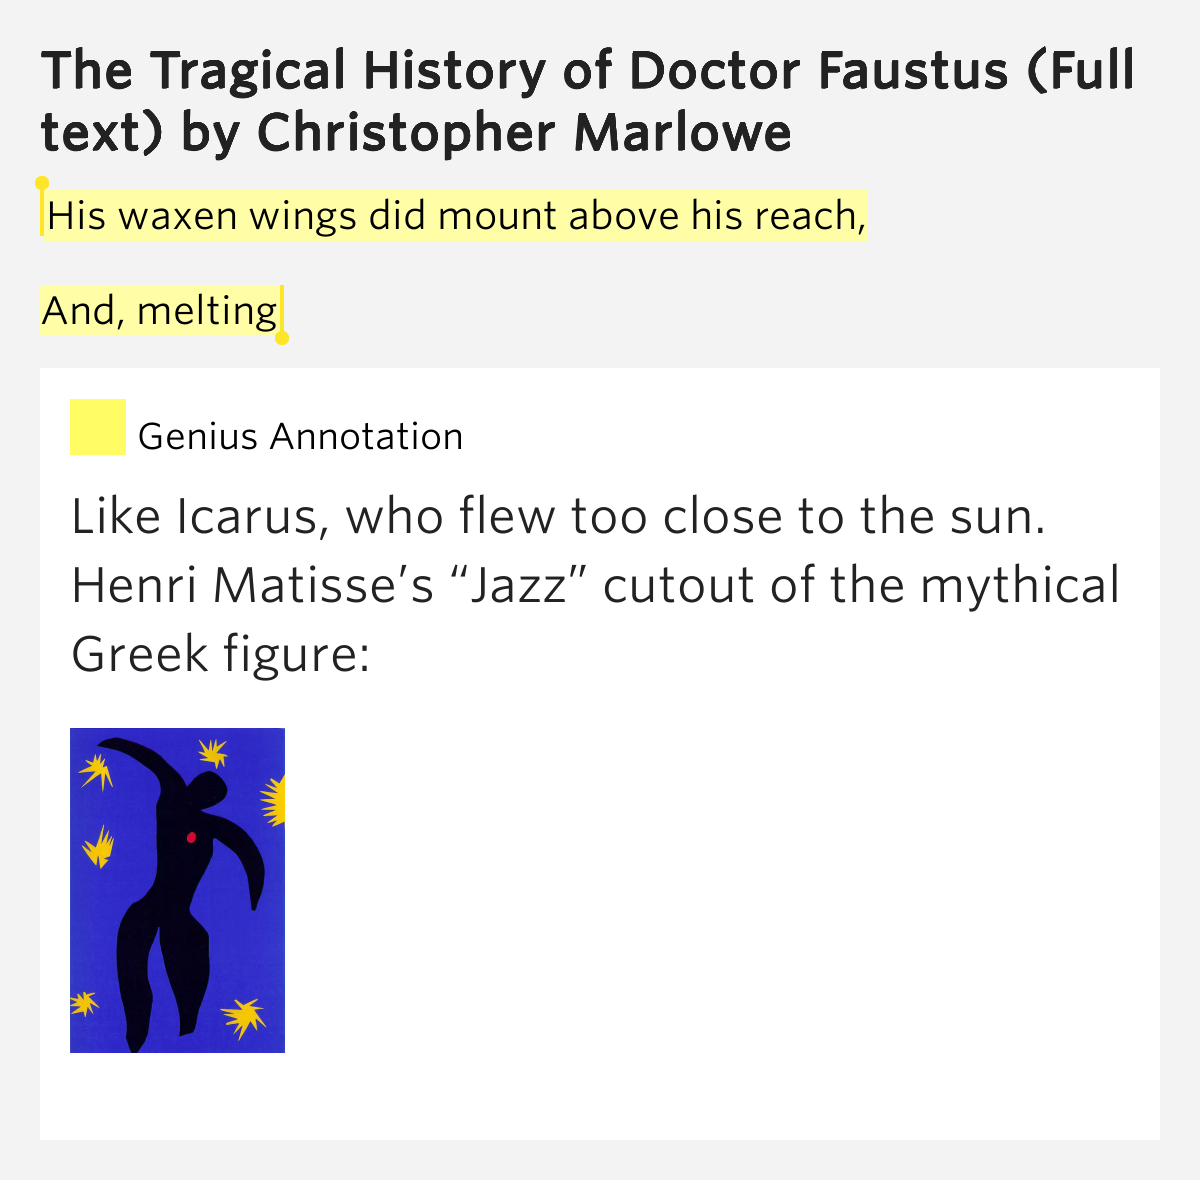 the tragical history of d faustus essay